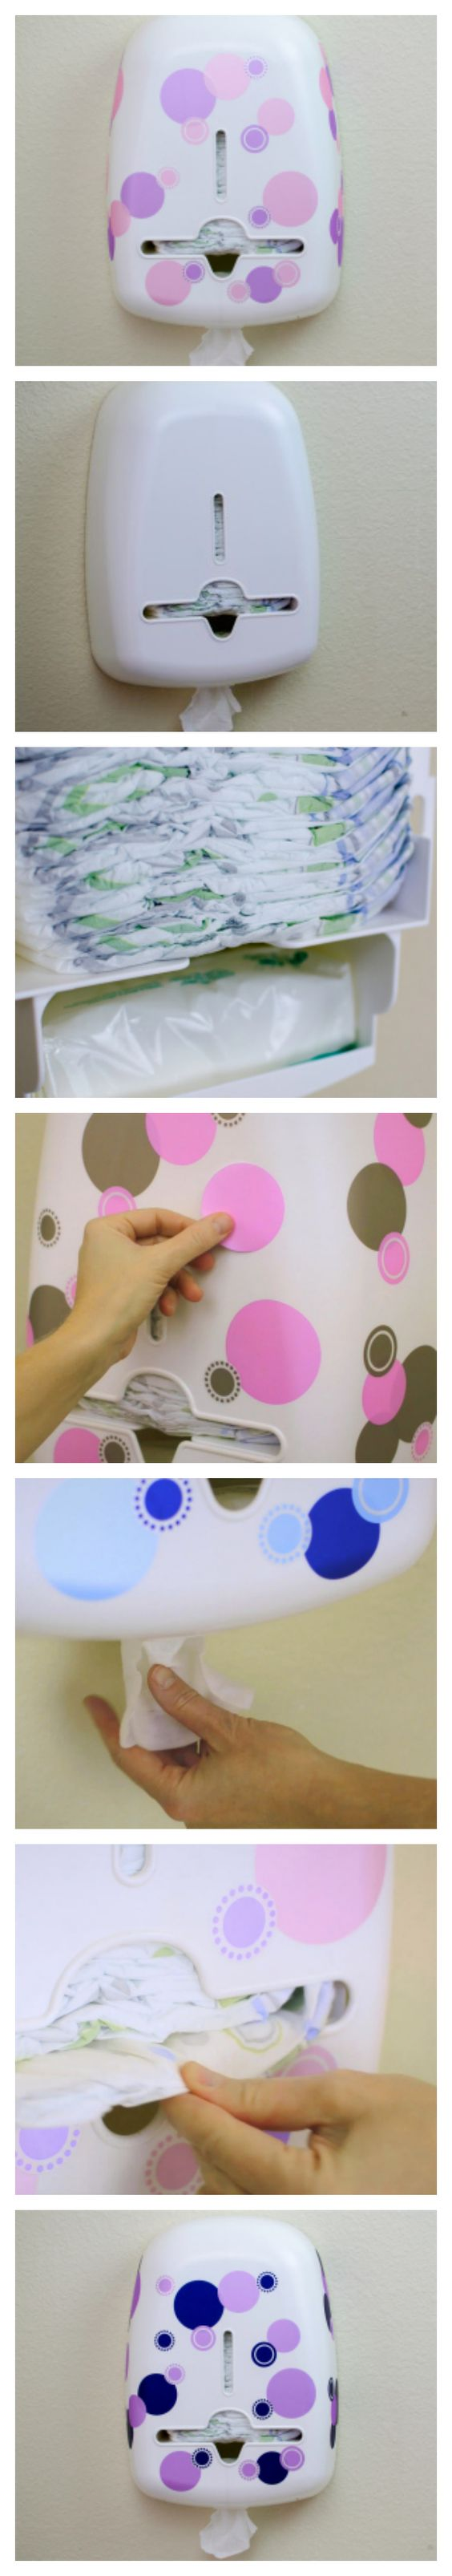 Create your own DIY Bobee diaper and wipe dispenser for your nursery. Choose colorful decals to match your baby's room from soft pink and gray to navy and lavender. Organize your changing table area.